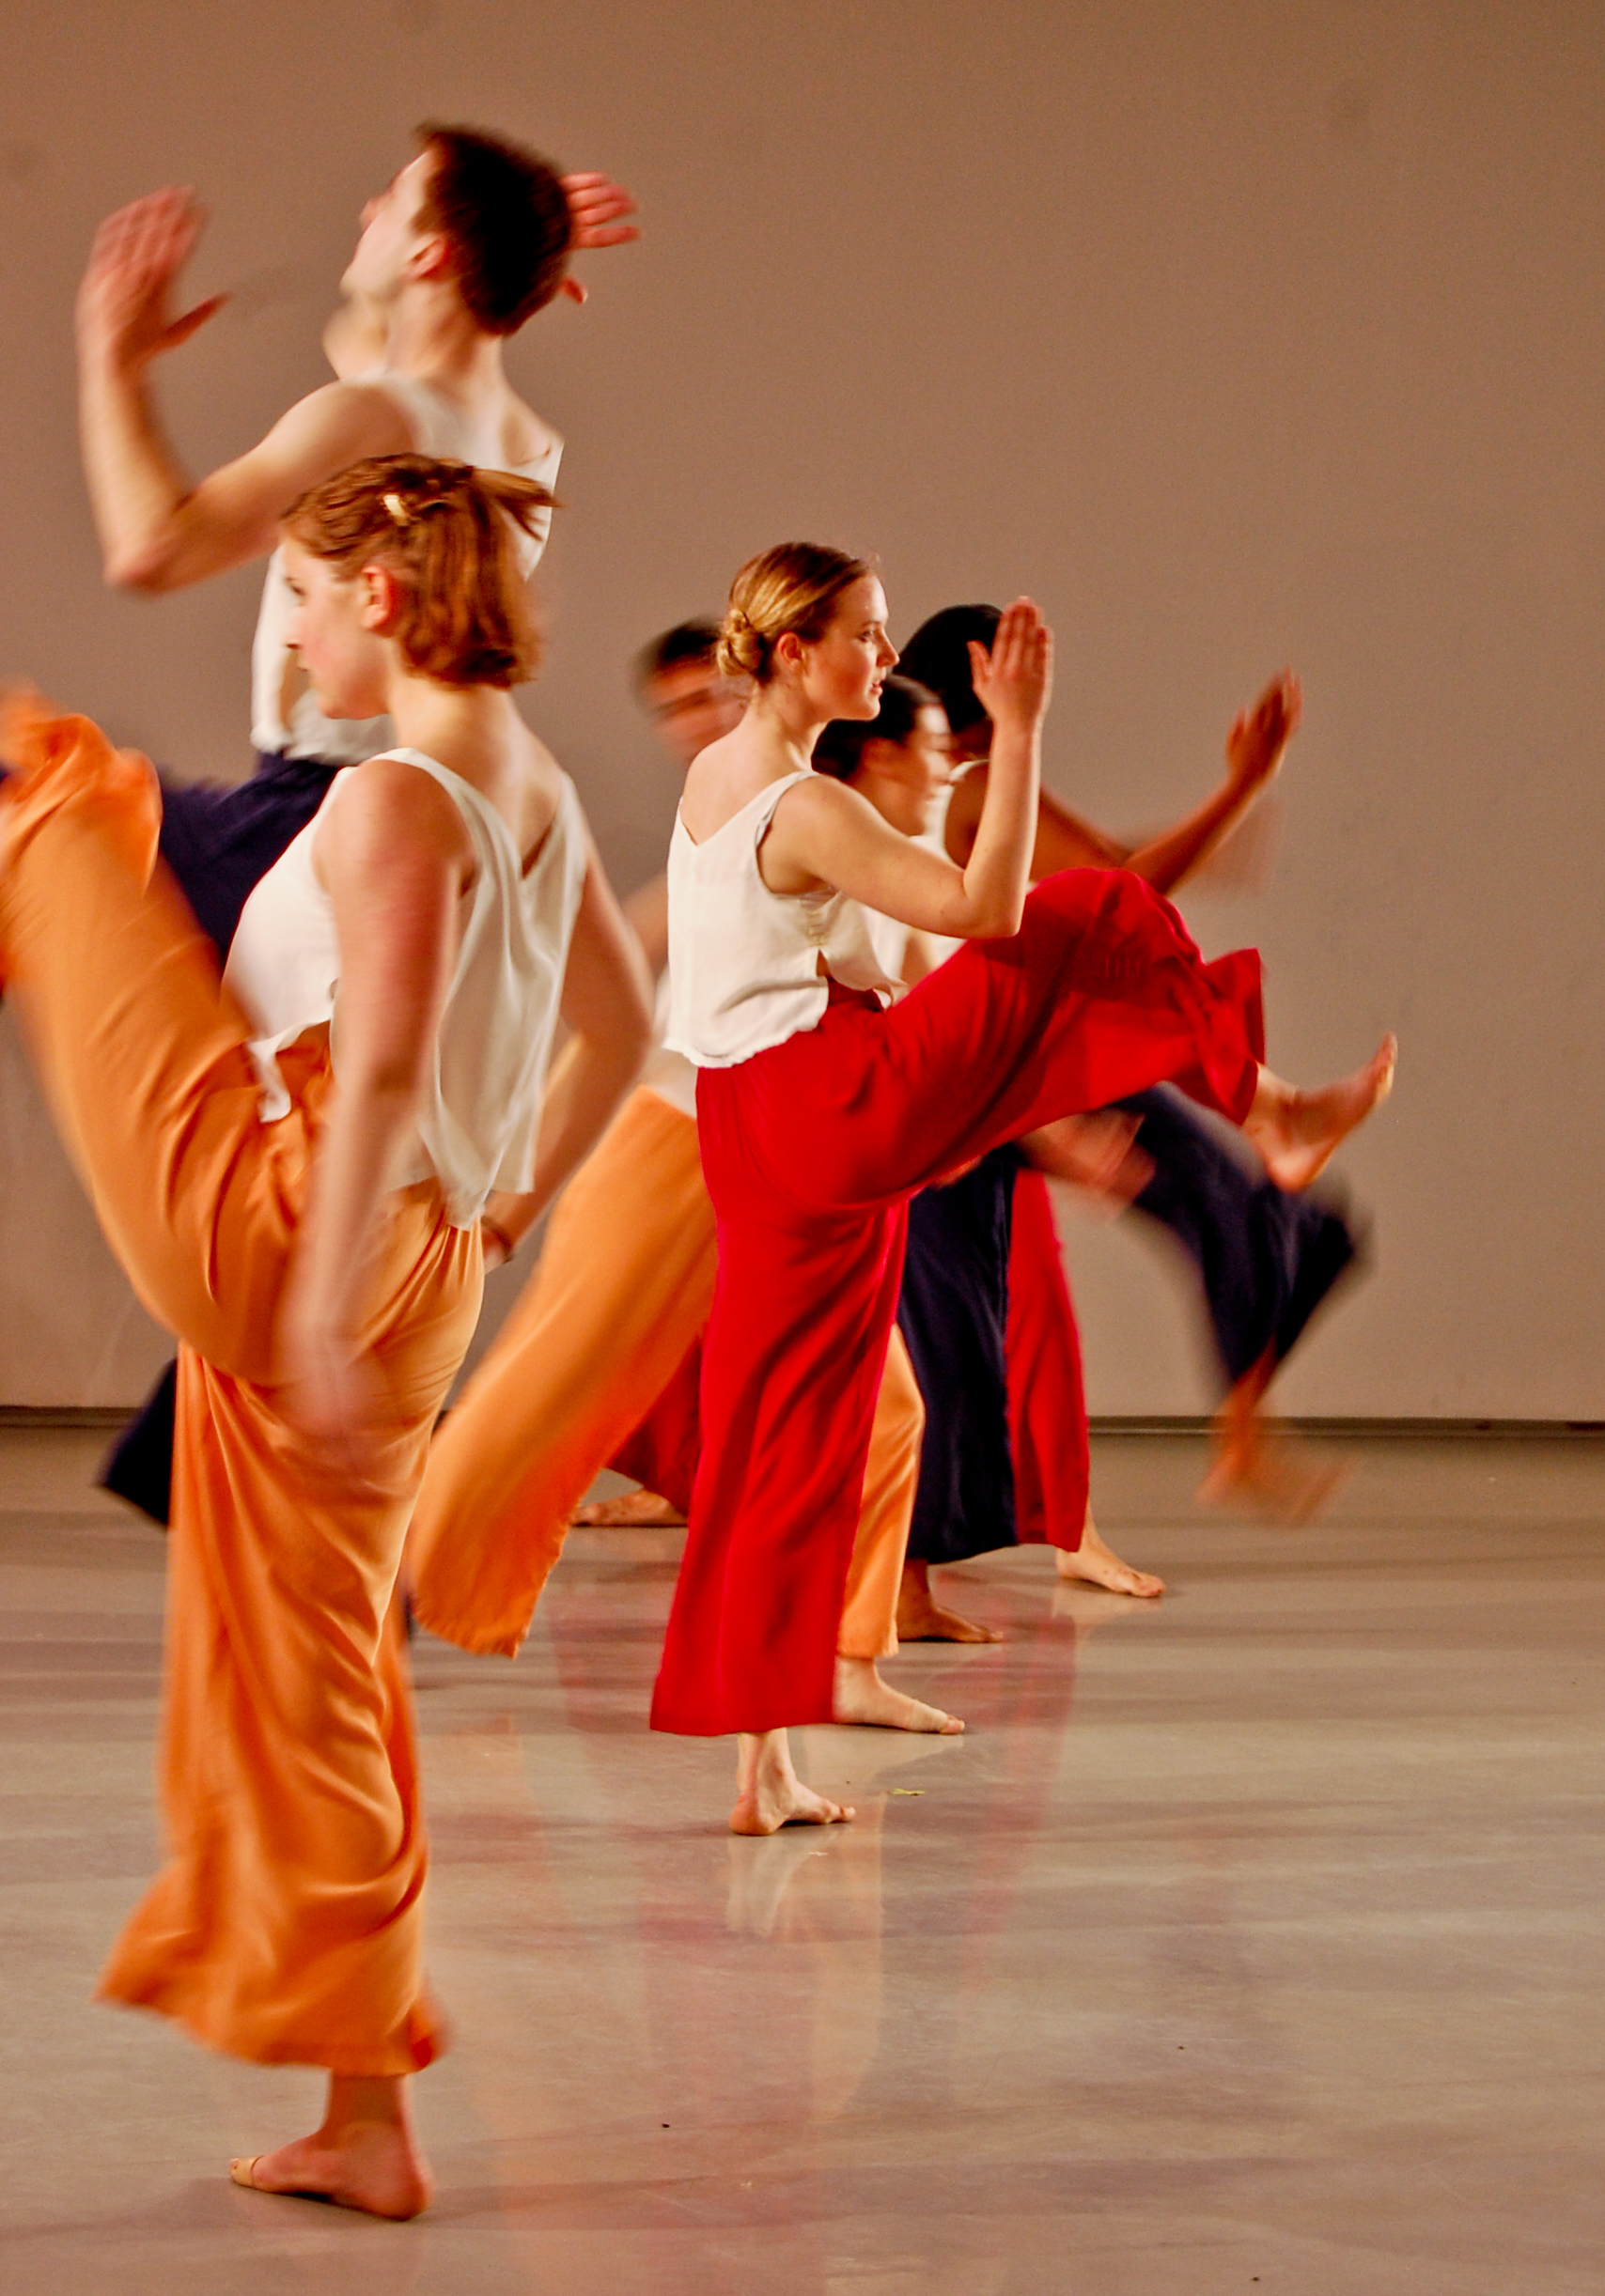 essays about dance performance Dancing is the art of moving the body in time to music dancing is both an art and a form of recreation most people dance to have fun or to entertain.